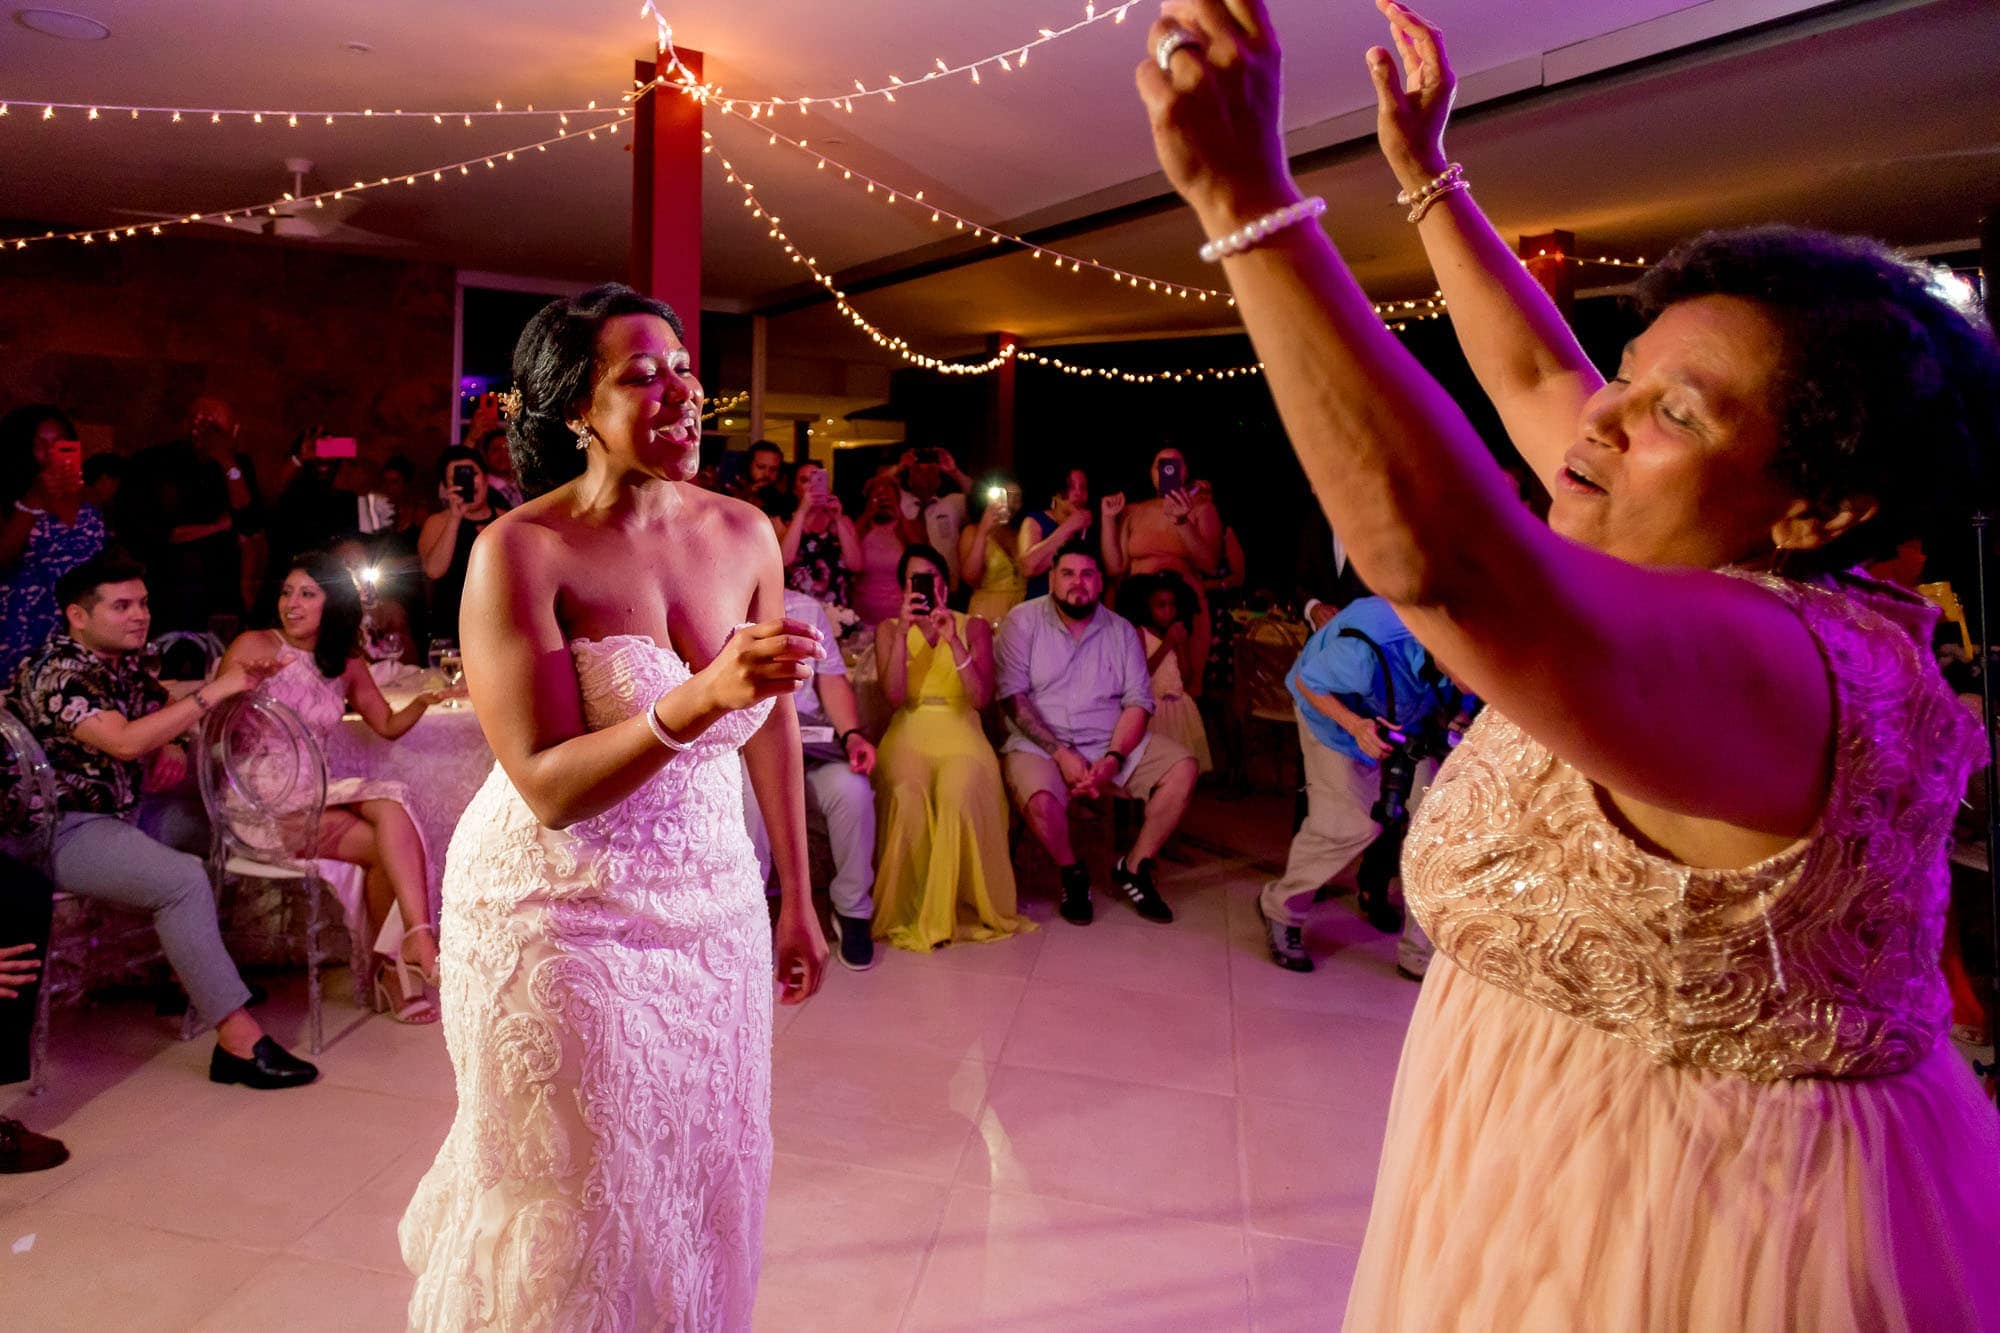 Best dance party ever! Mother-daughter dance